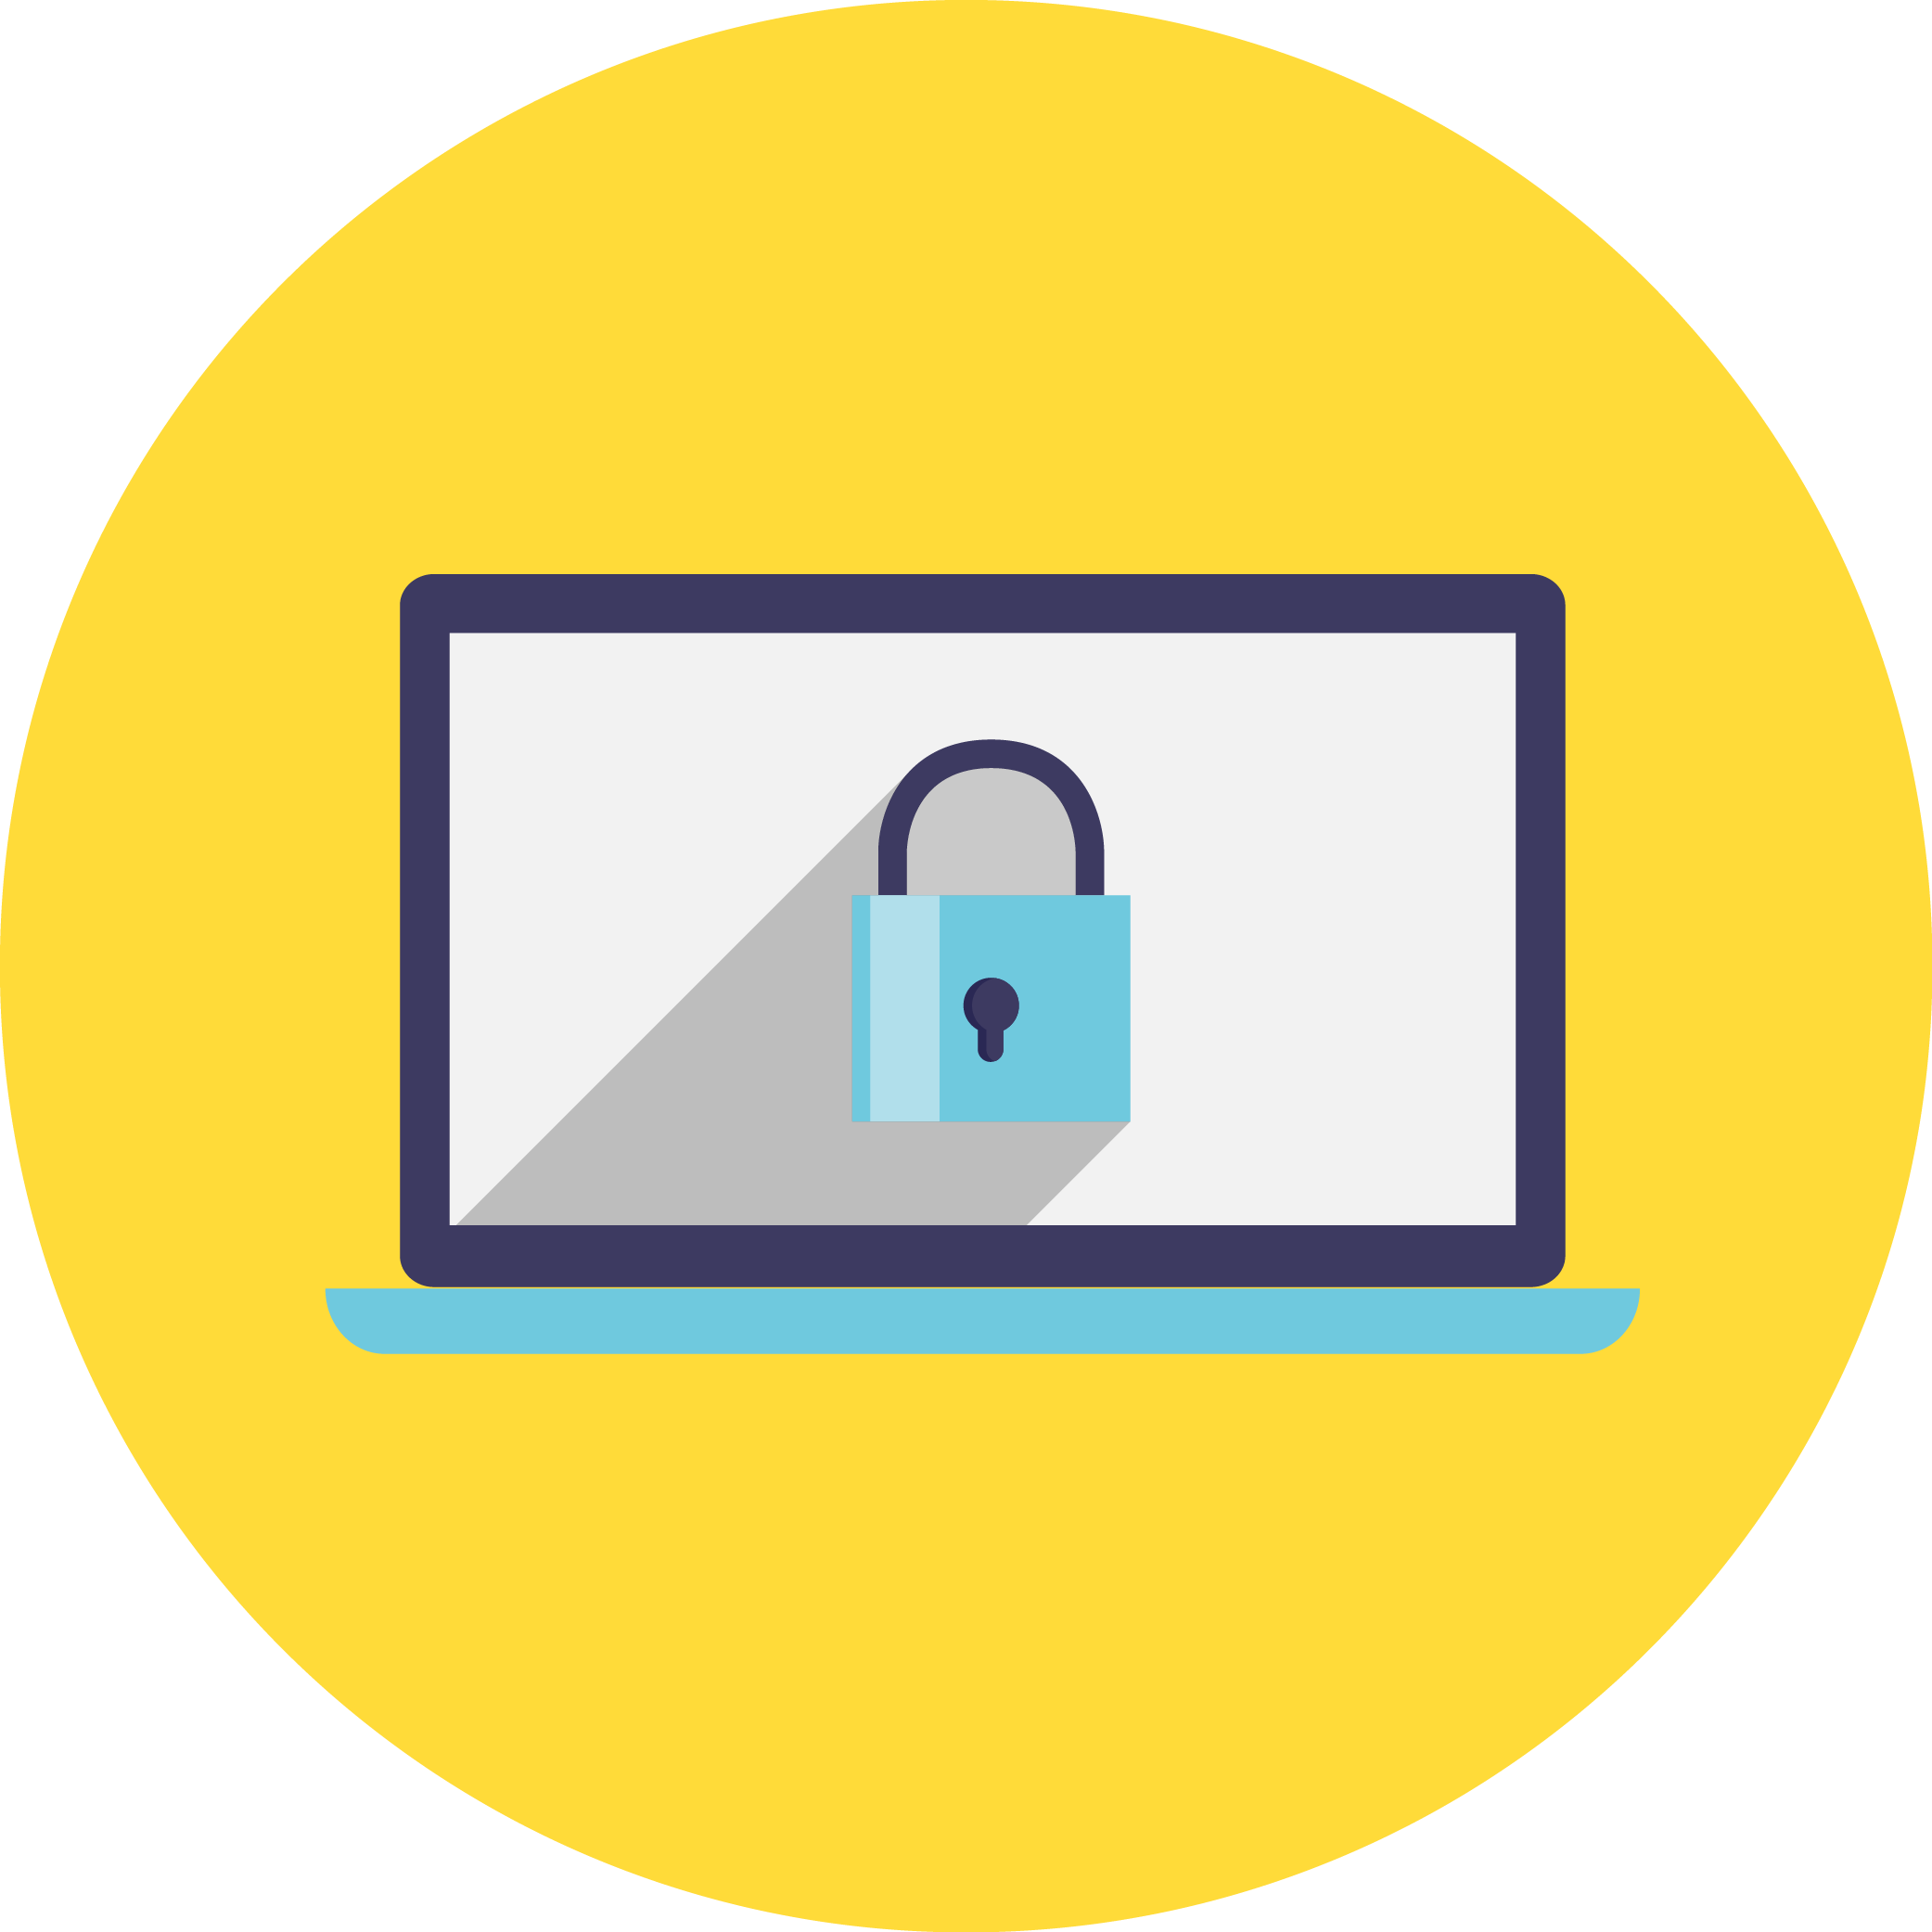 questions to ask. Lock clipart data security